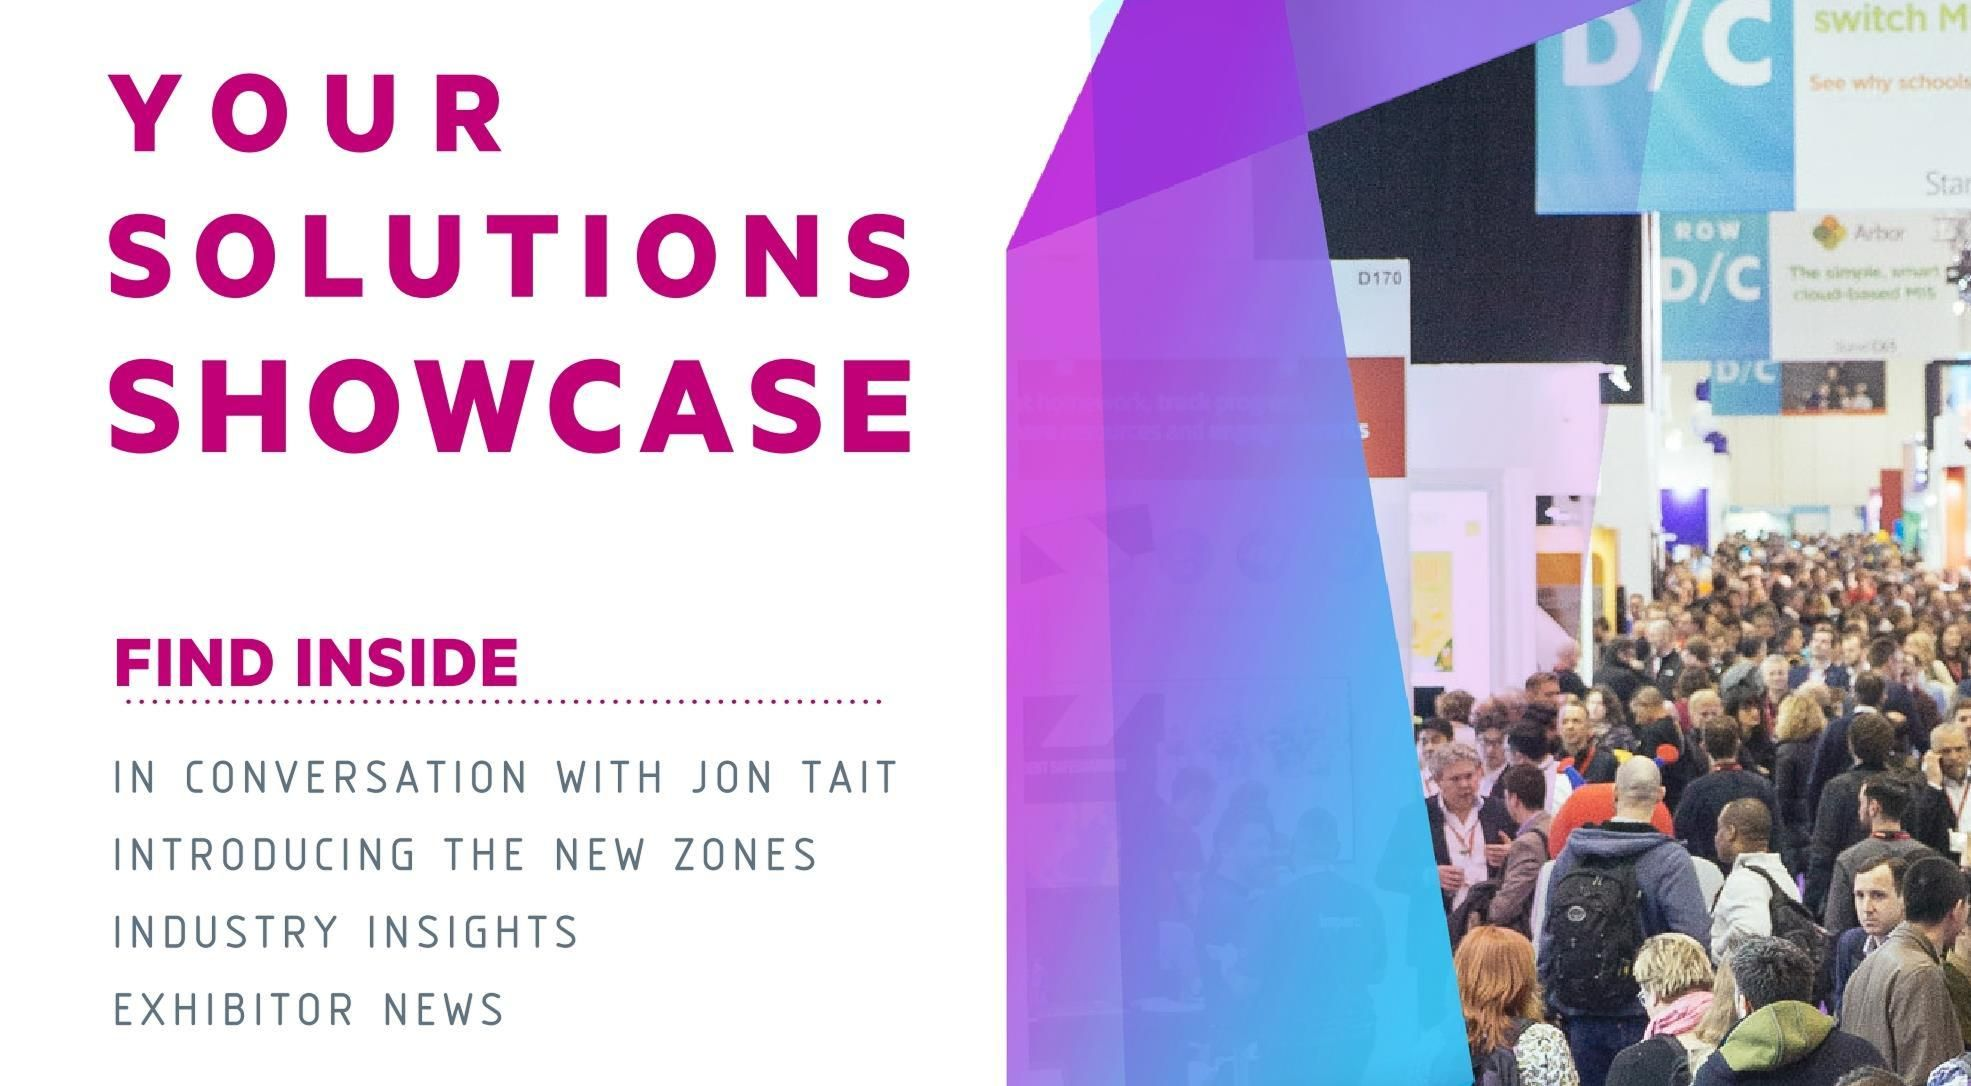 The Solutions Showcase